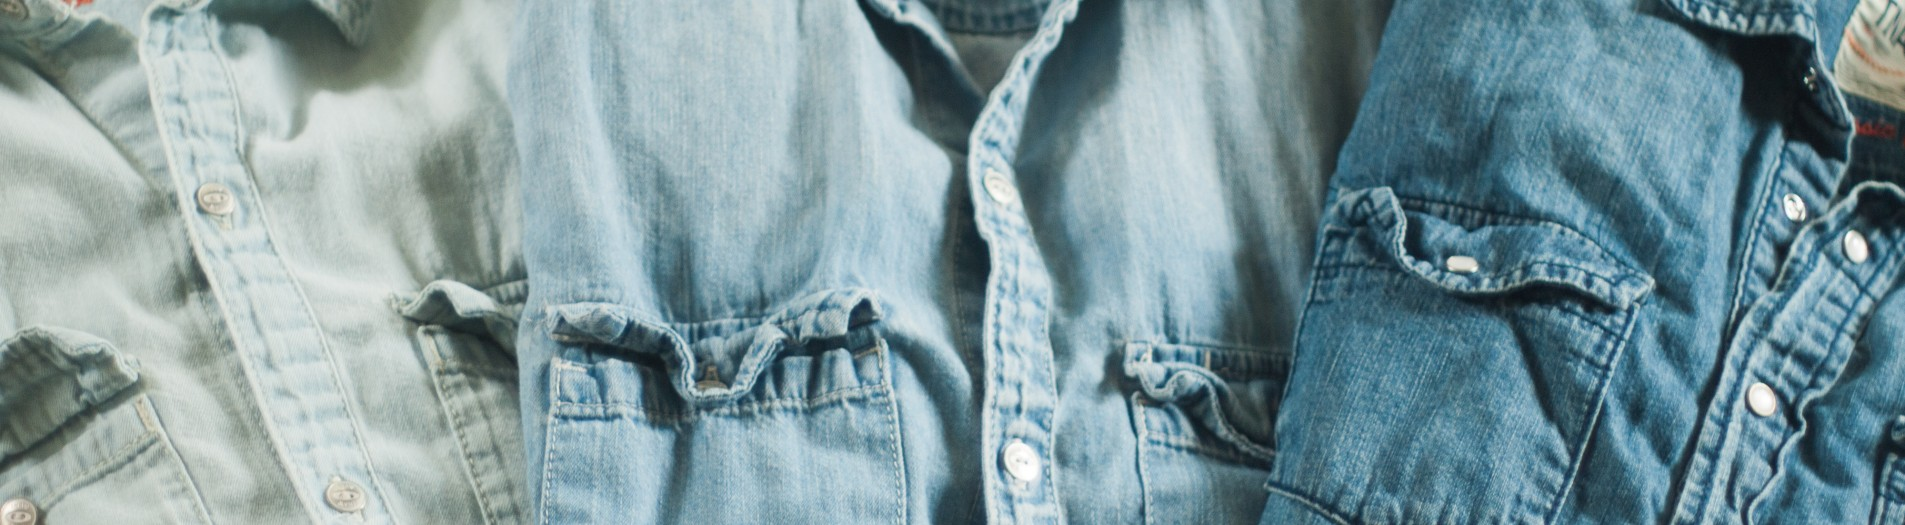 Current Rotations/Denim Chambray Shirts